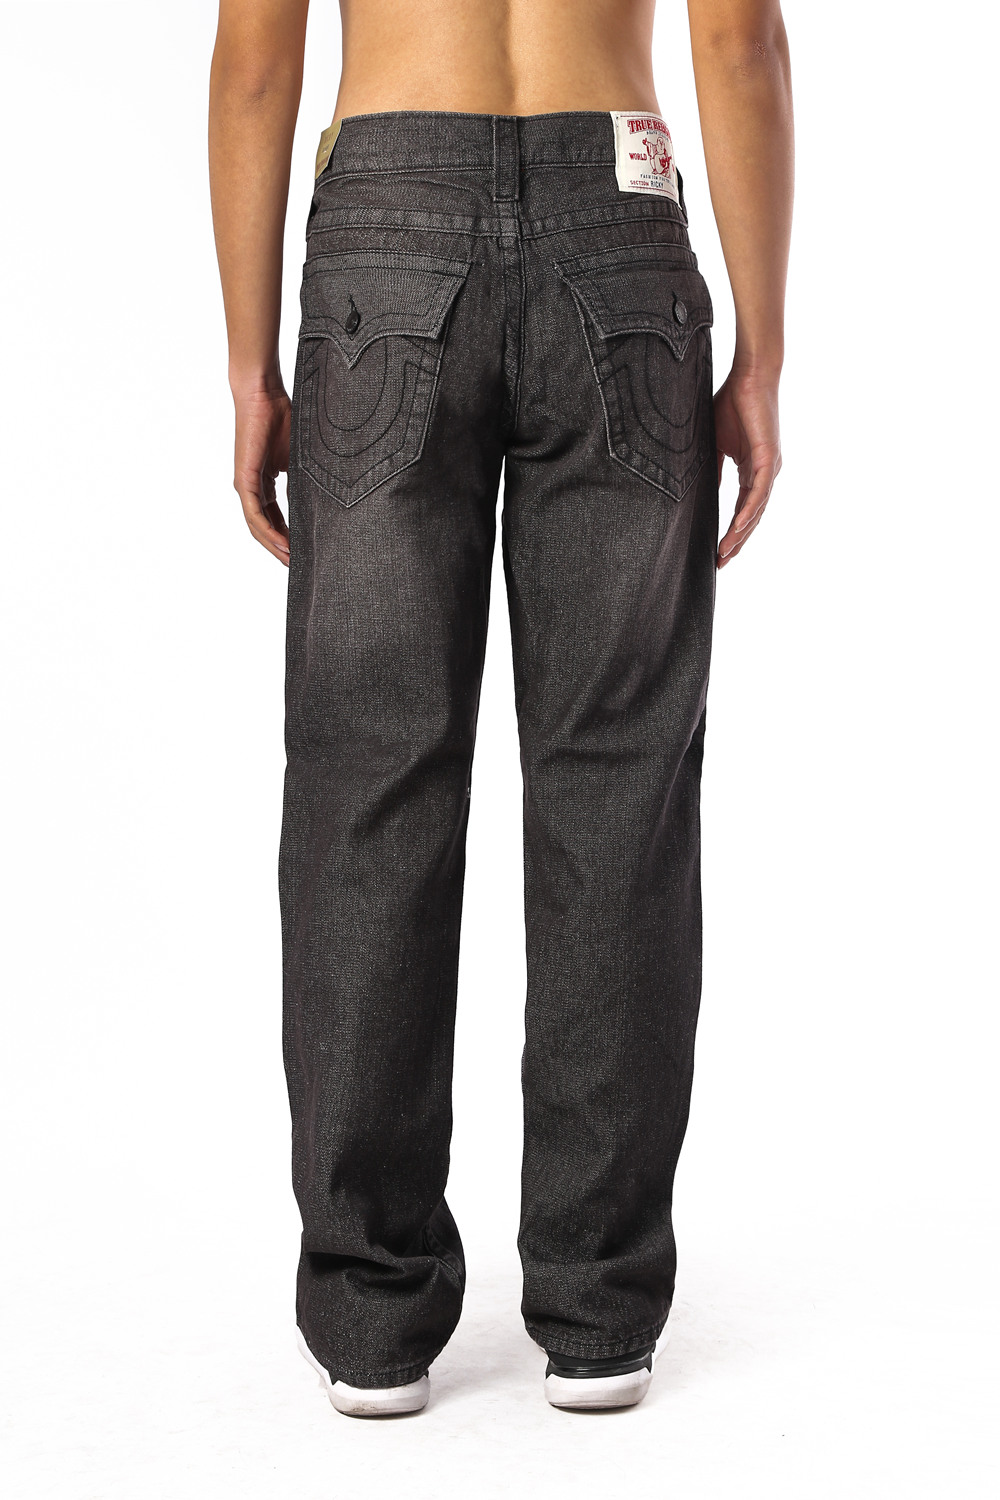 True Religion Mens Jeans Back